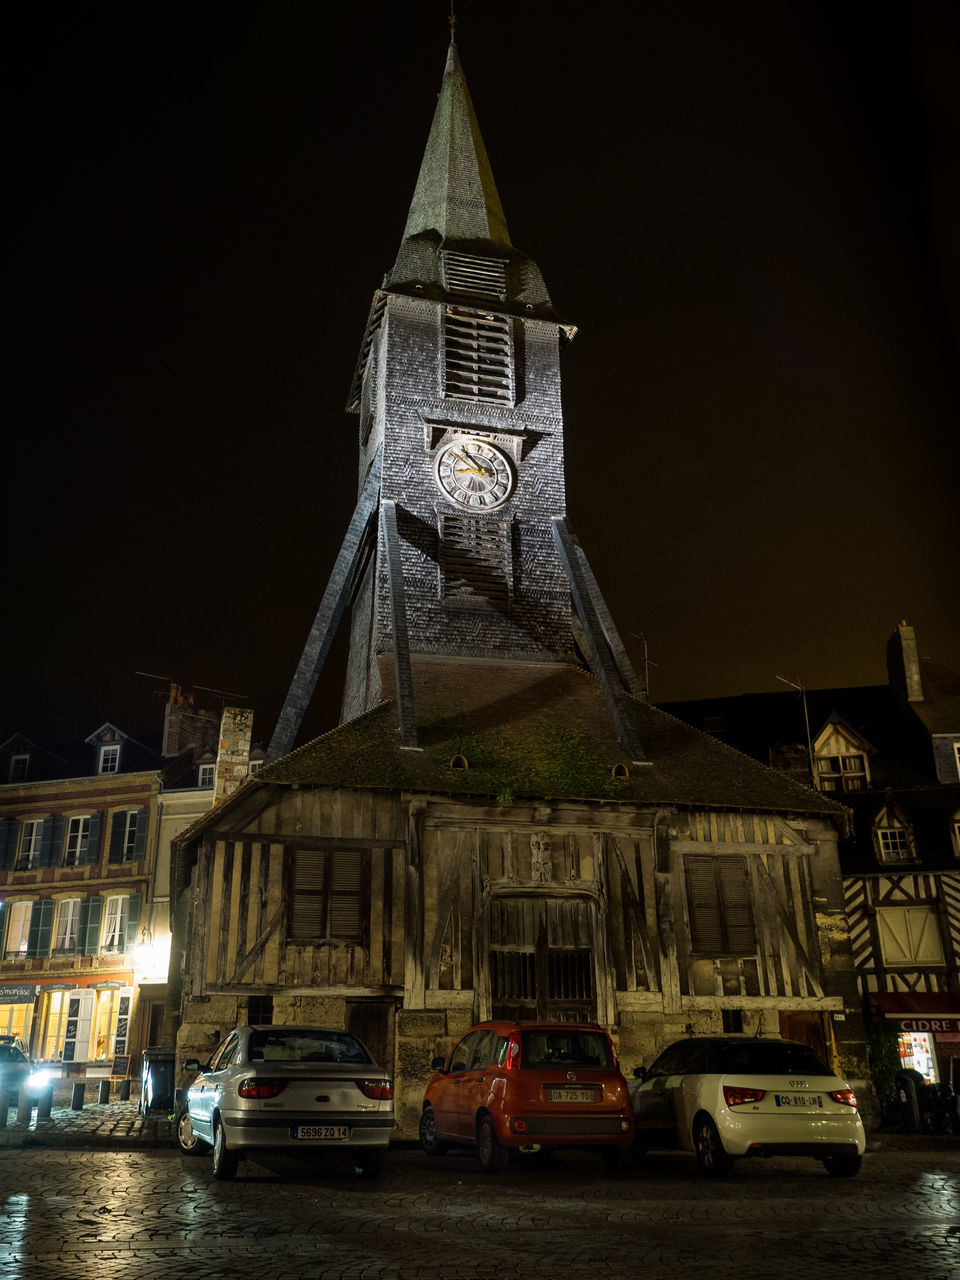 architecture, building exterior, night, built structure, car, religion, illuminated, spirituality, transportation, no people, place of worship, clock tower, mode of transport, history, travel destinations, outdoors, sky